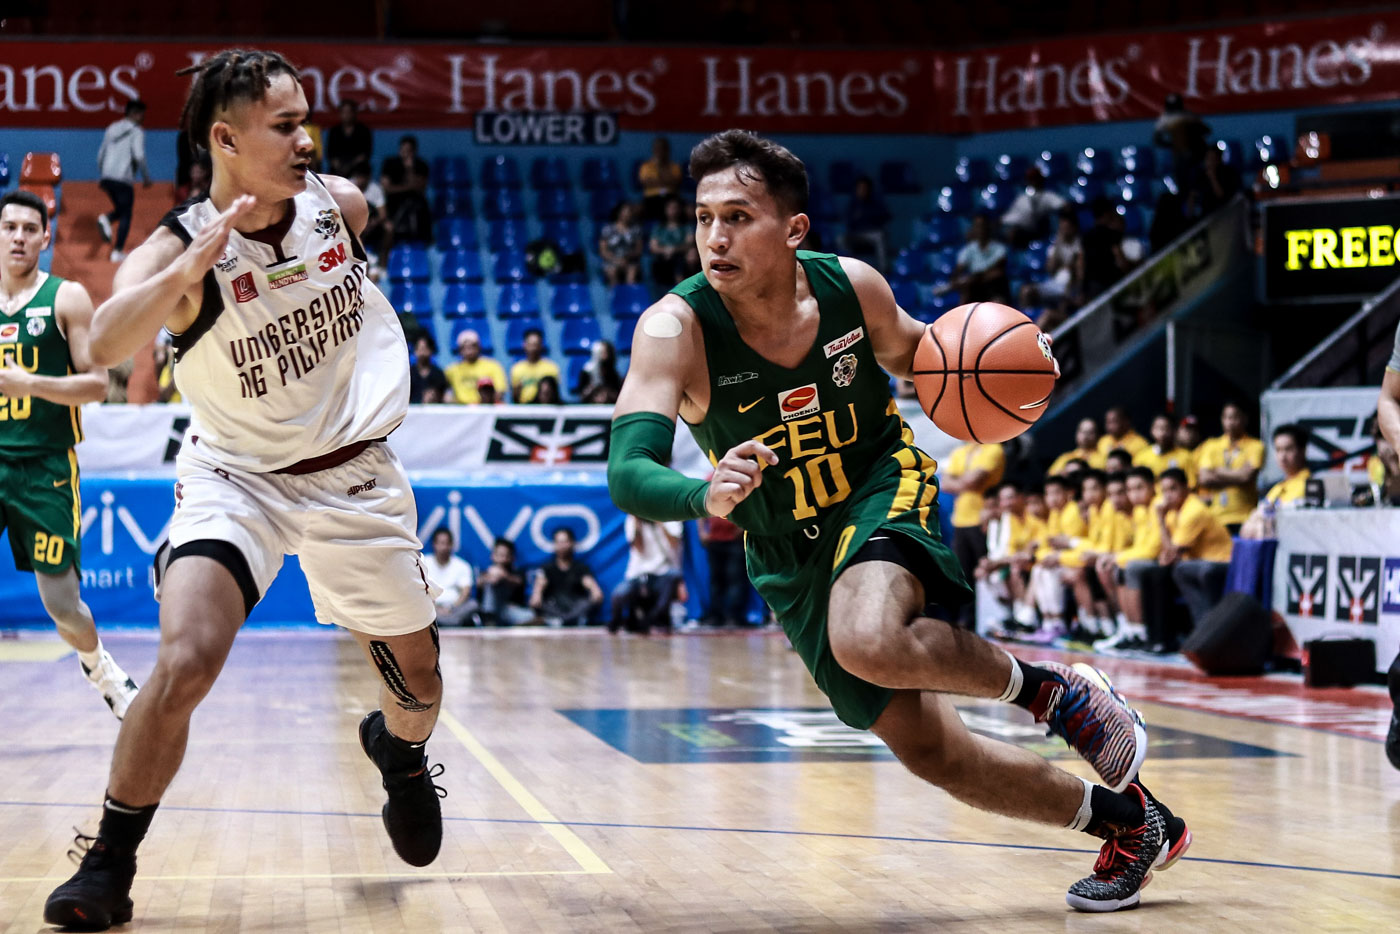 FEU blasts UP as Perasol serves suspension